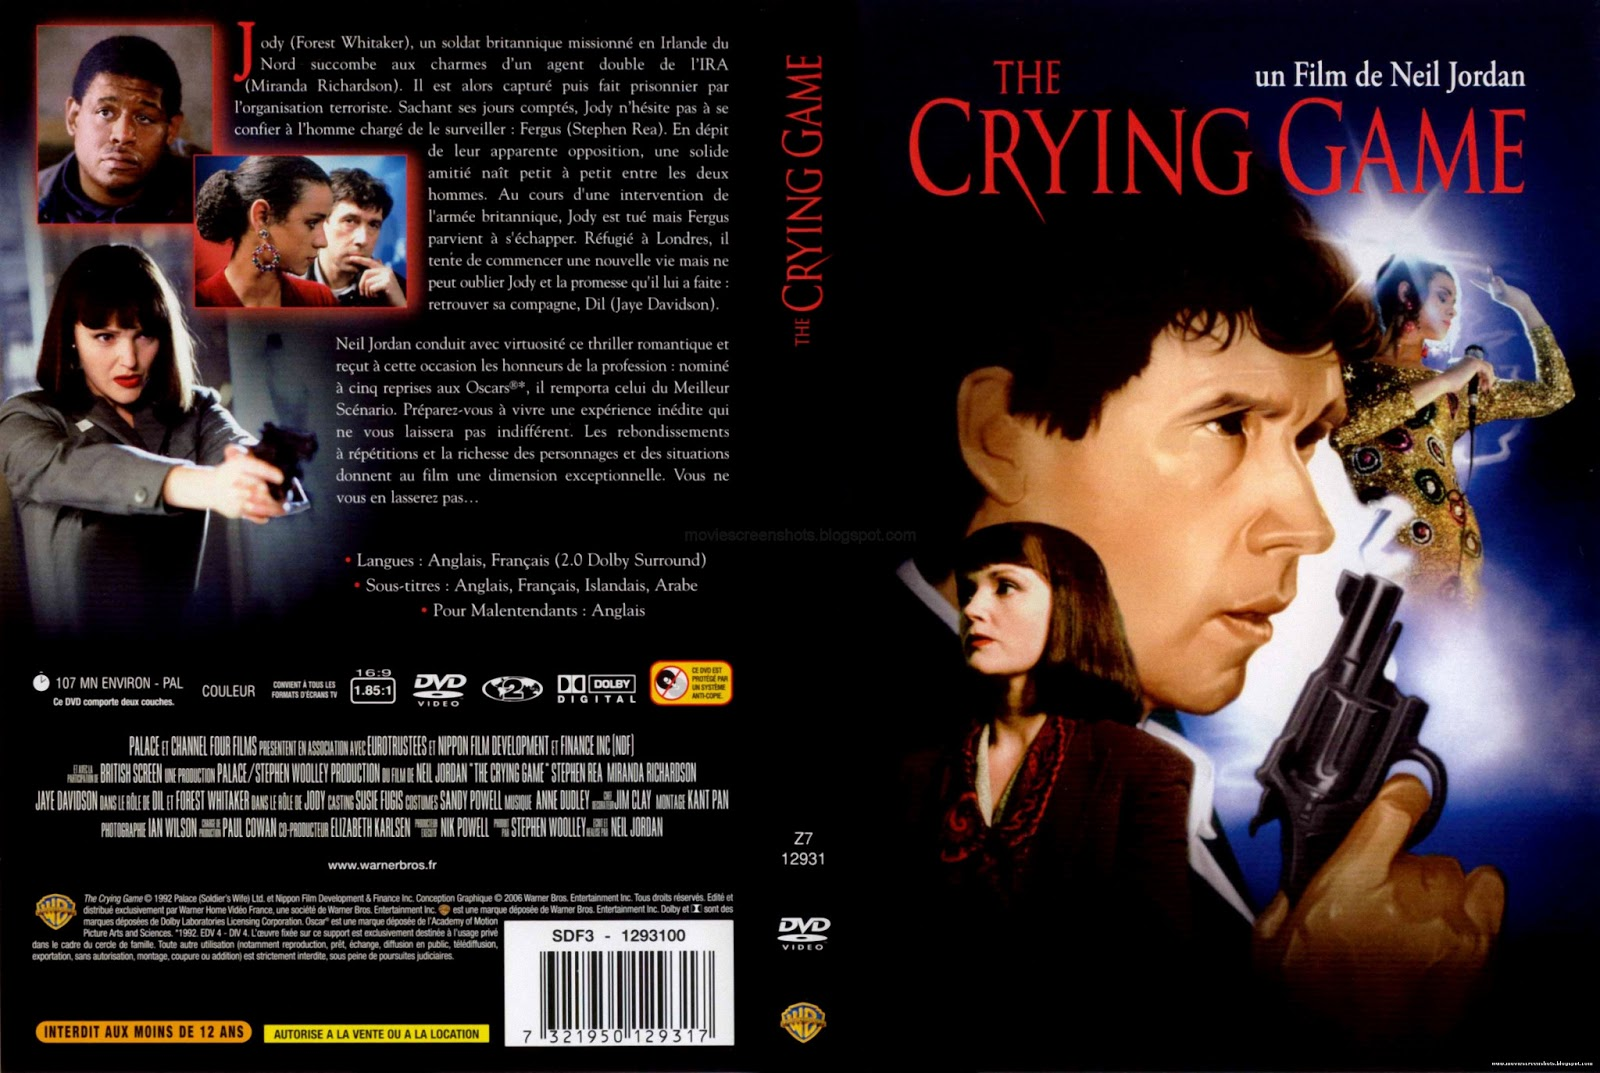 an analysis of gender identity in the crying game a film by neil jordan The crying game is a 1992 english-language thriller film written and directed by neil jordanthe film explores themes of race, gender, nationality, and sexuality against the backdrop of the troubles in northern ireland.